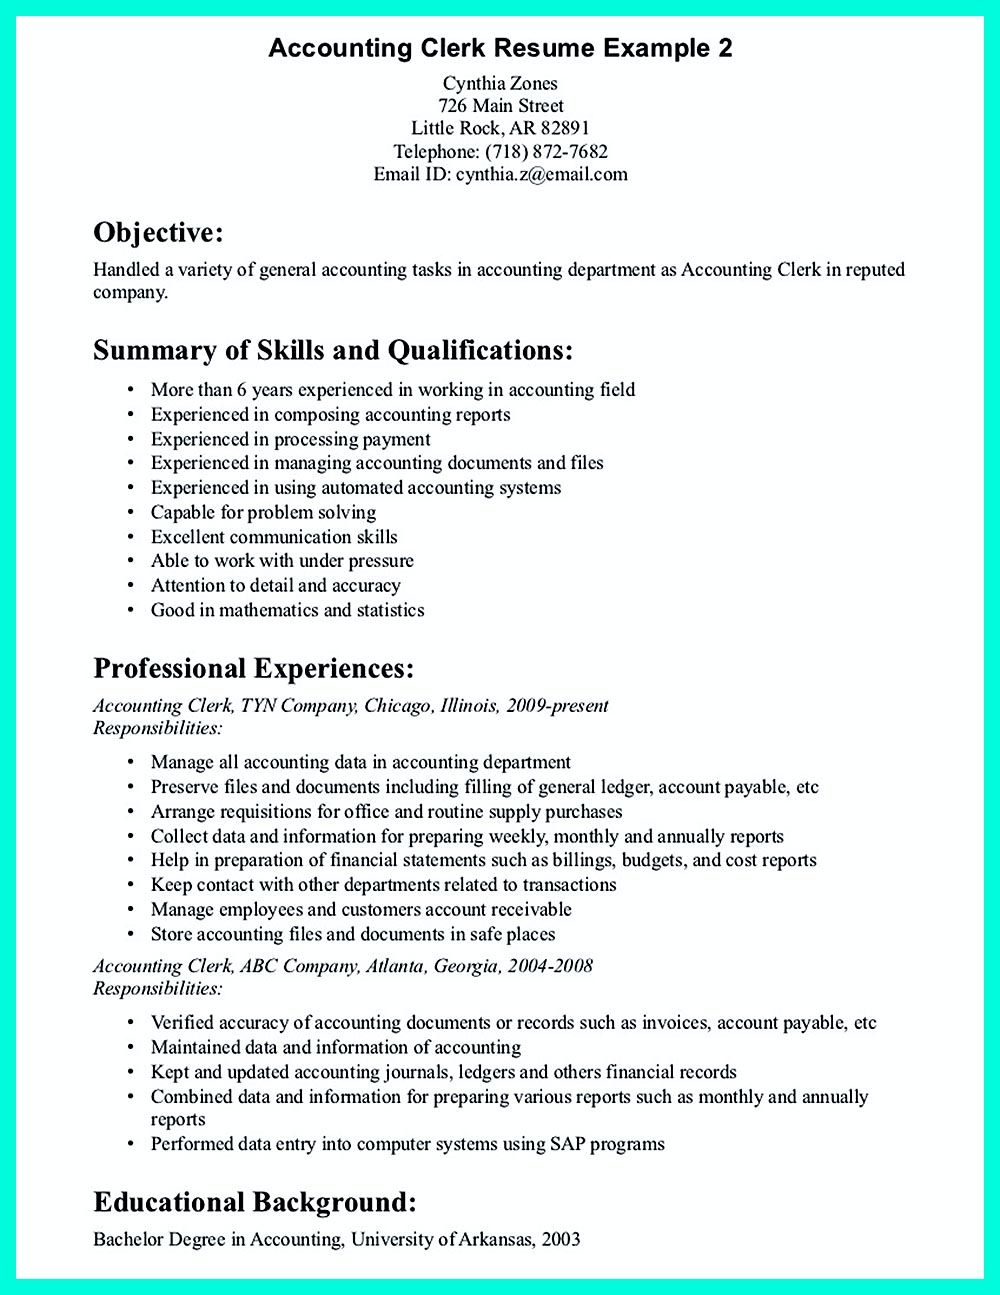 Junior Accountant Resume Template Resume Template Guru Accountant Resume Best Resume Format Resume Examples